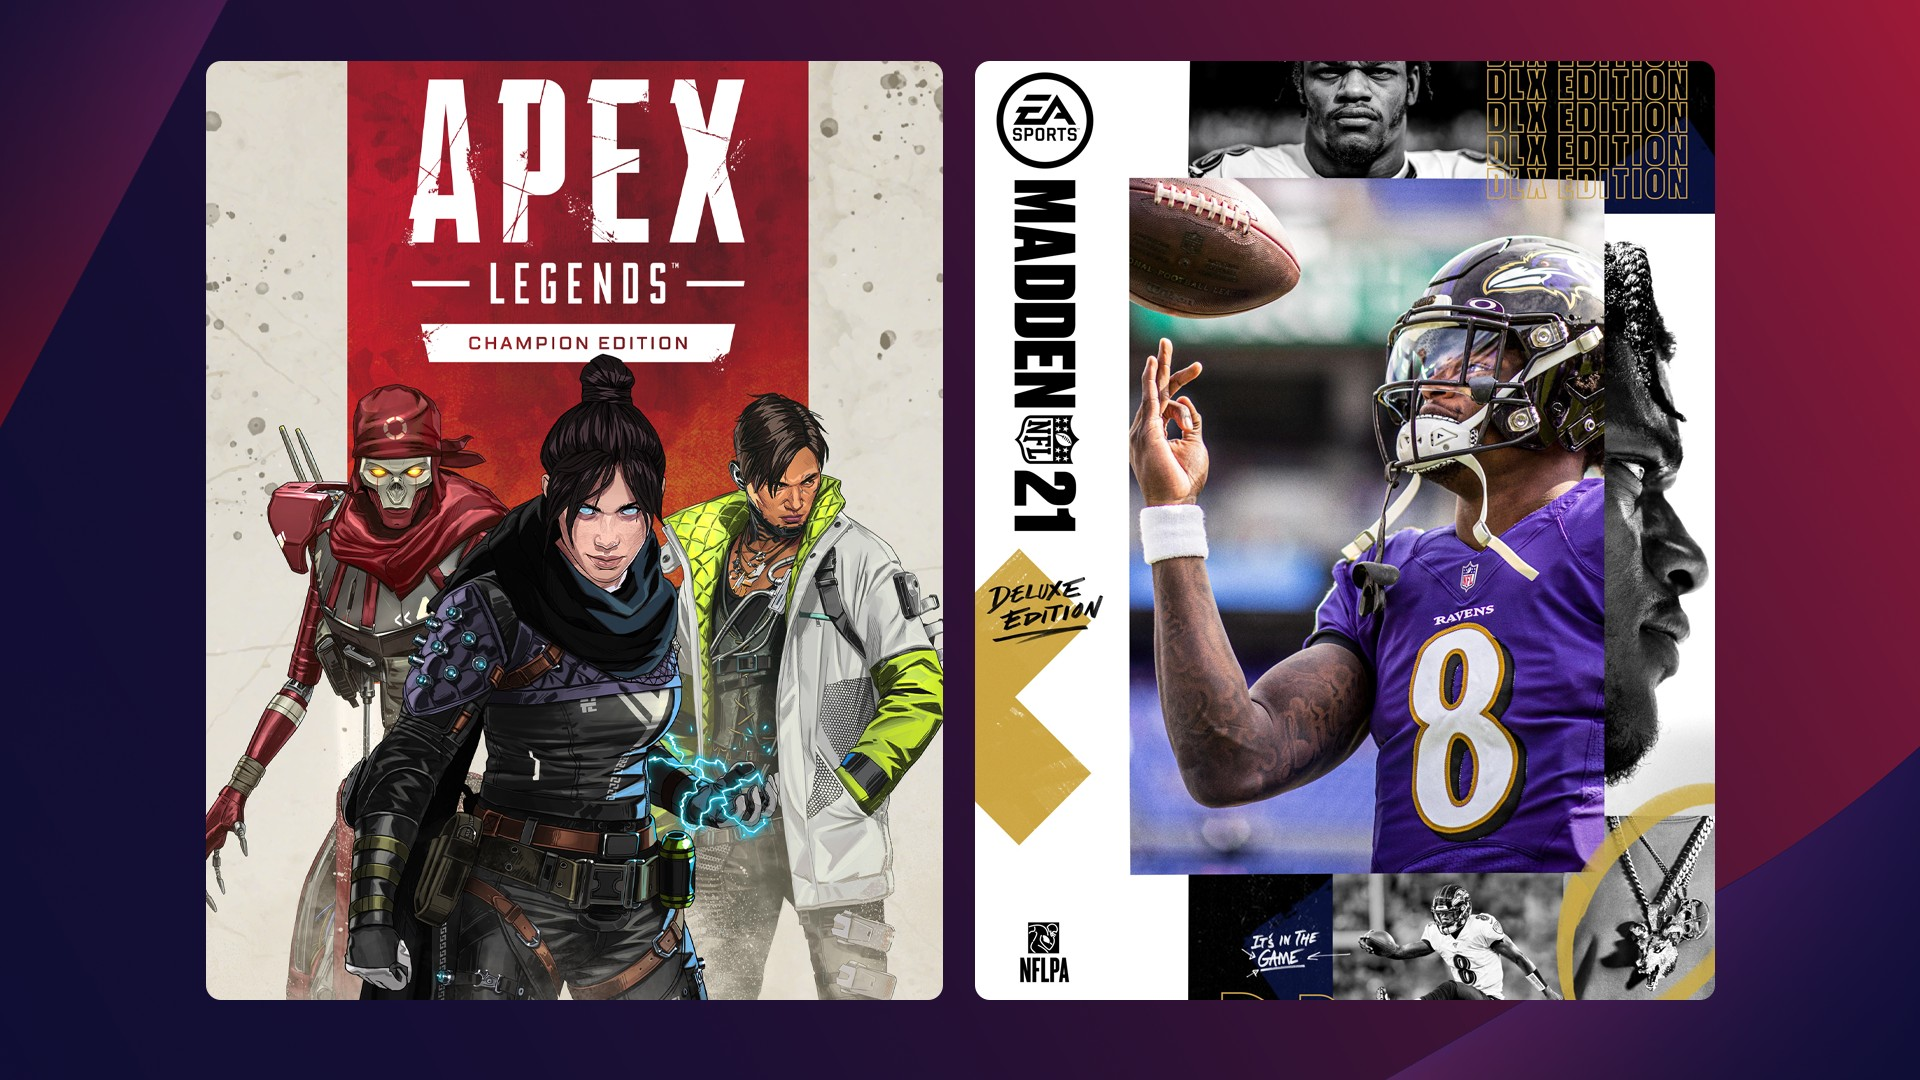 Buy Madden NFL 21 or Apex Legends – Champion Edition and Get a $5 Xbox Gift Card 2